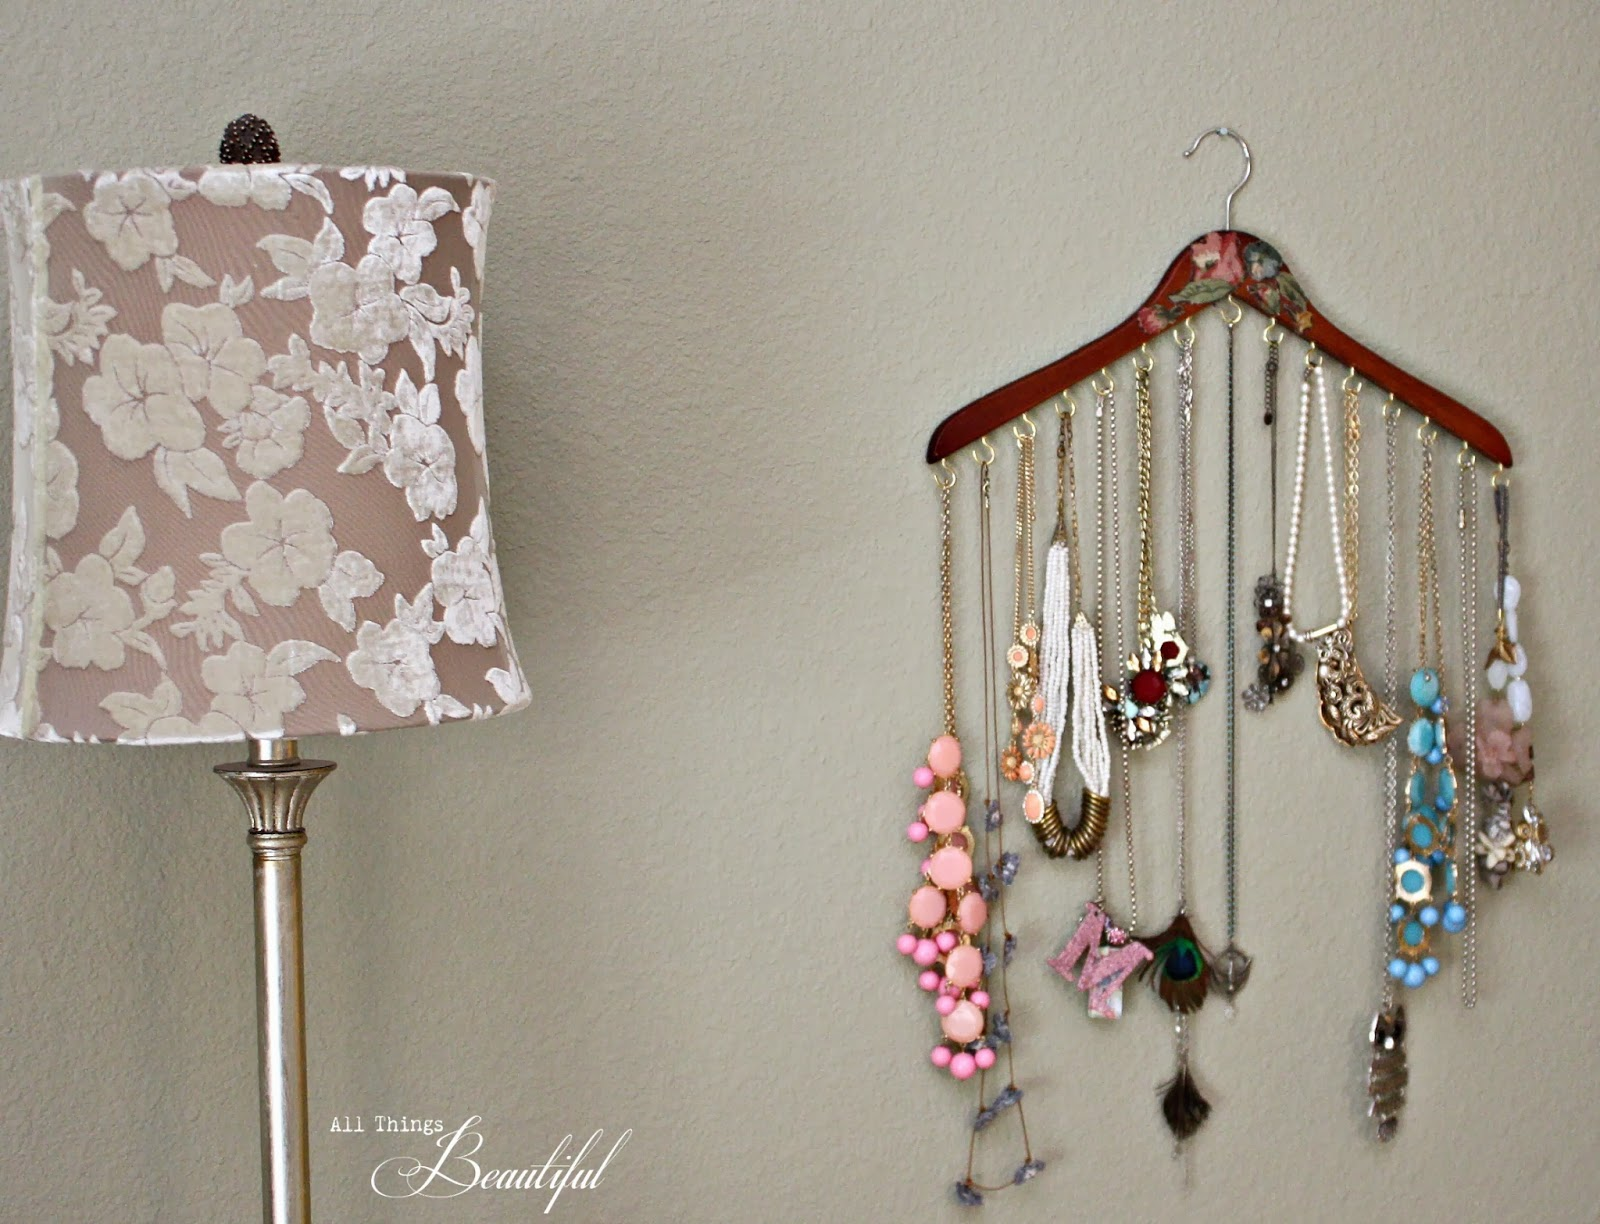 Operation Organization 2014 Jewelry Organization from All Things